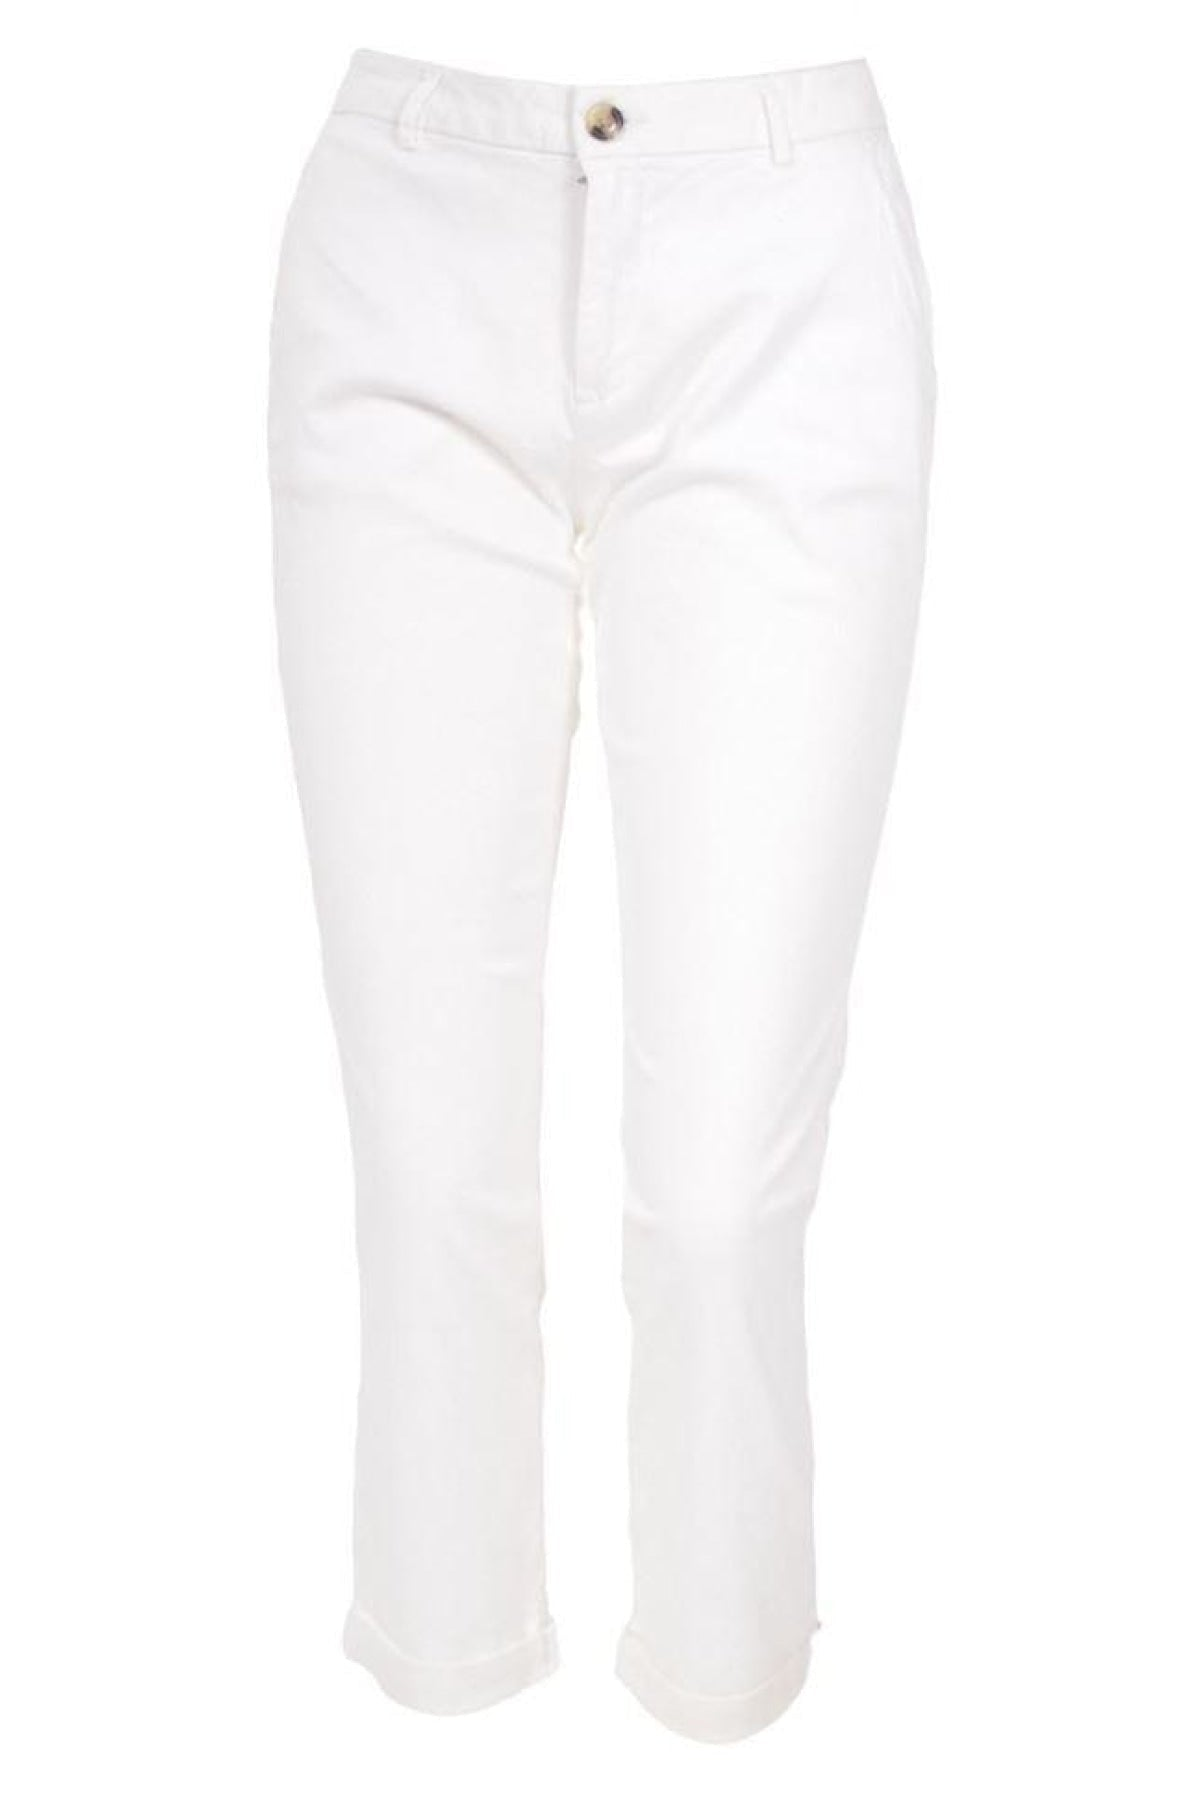 United Colors of Benetton Cropped Chino Trousers | 6 / Pink Secret Label